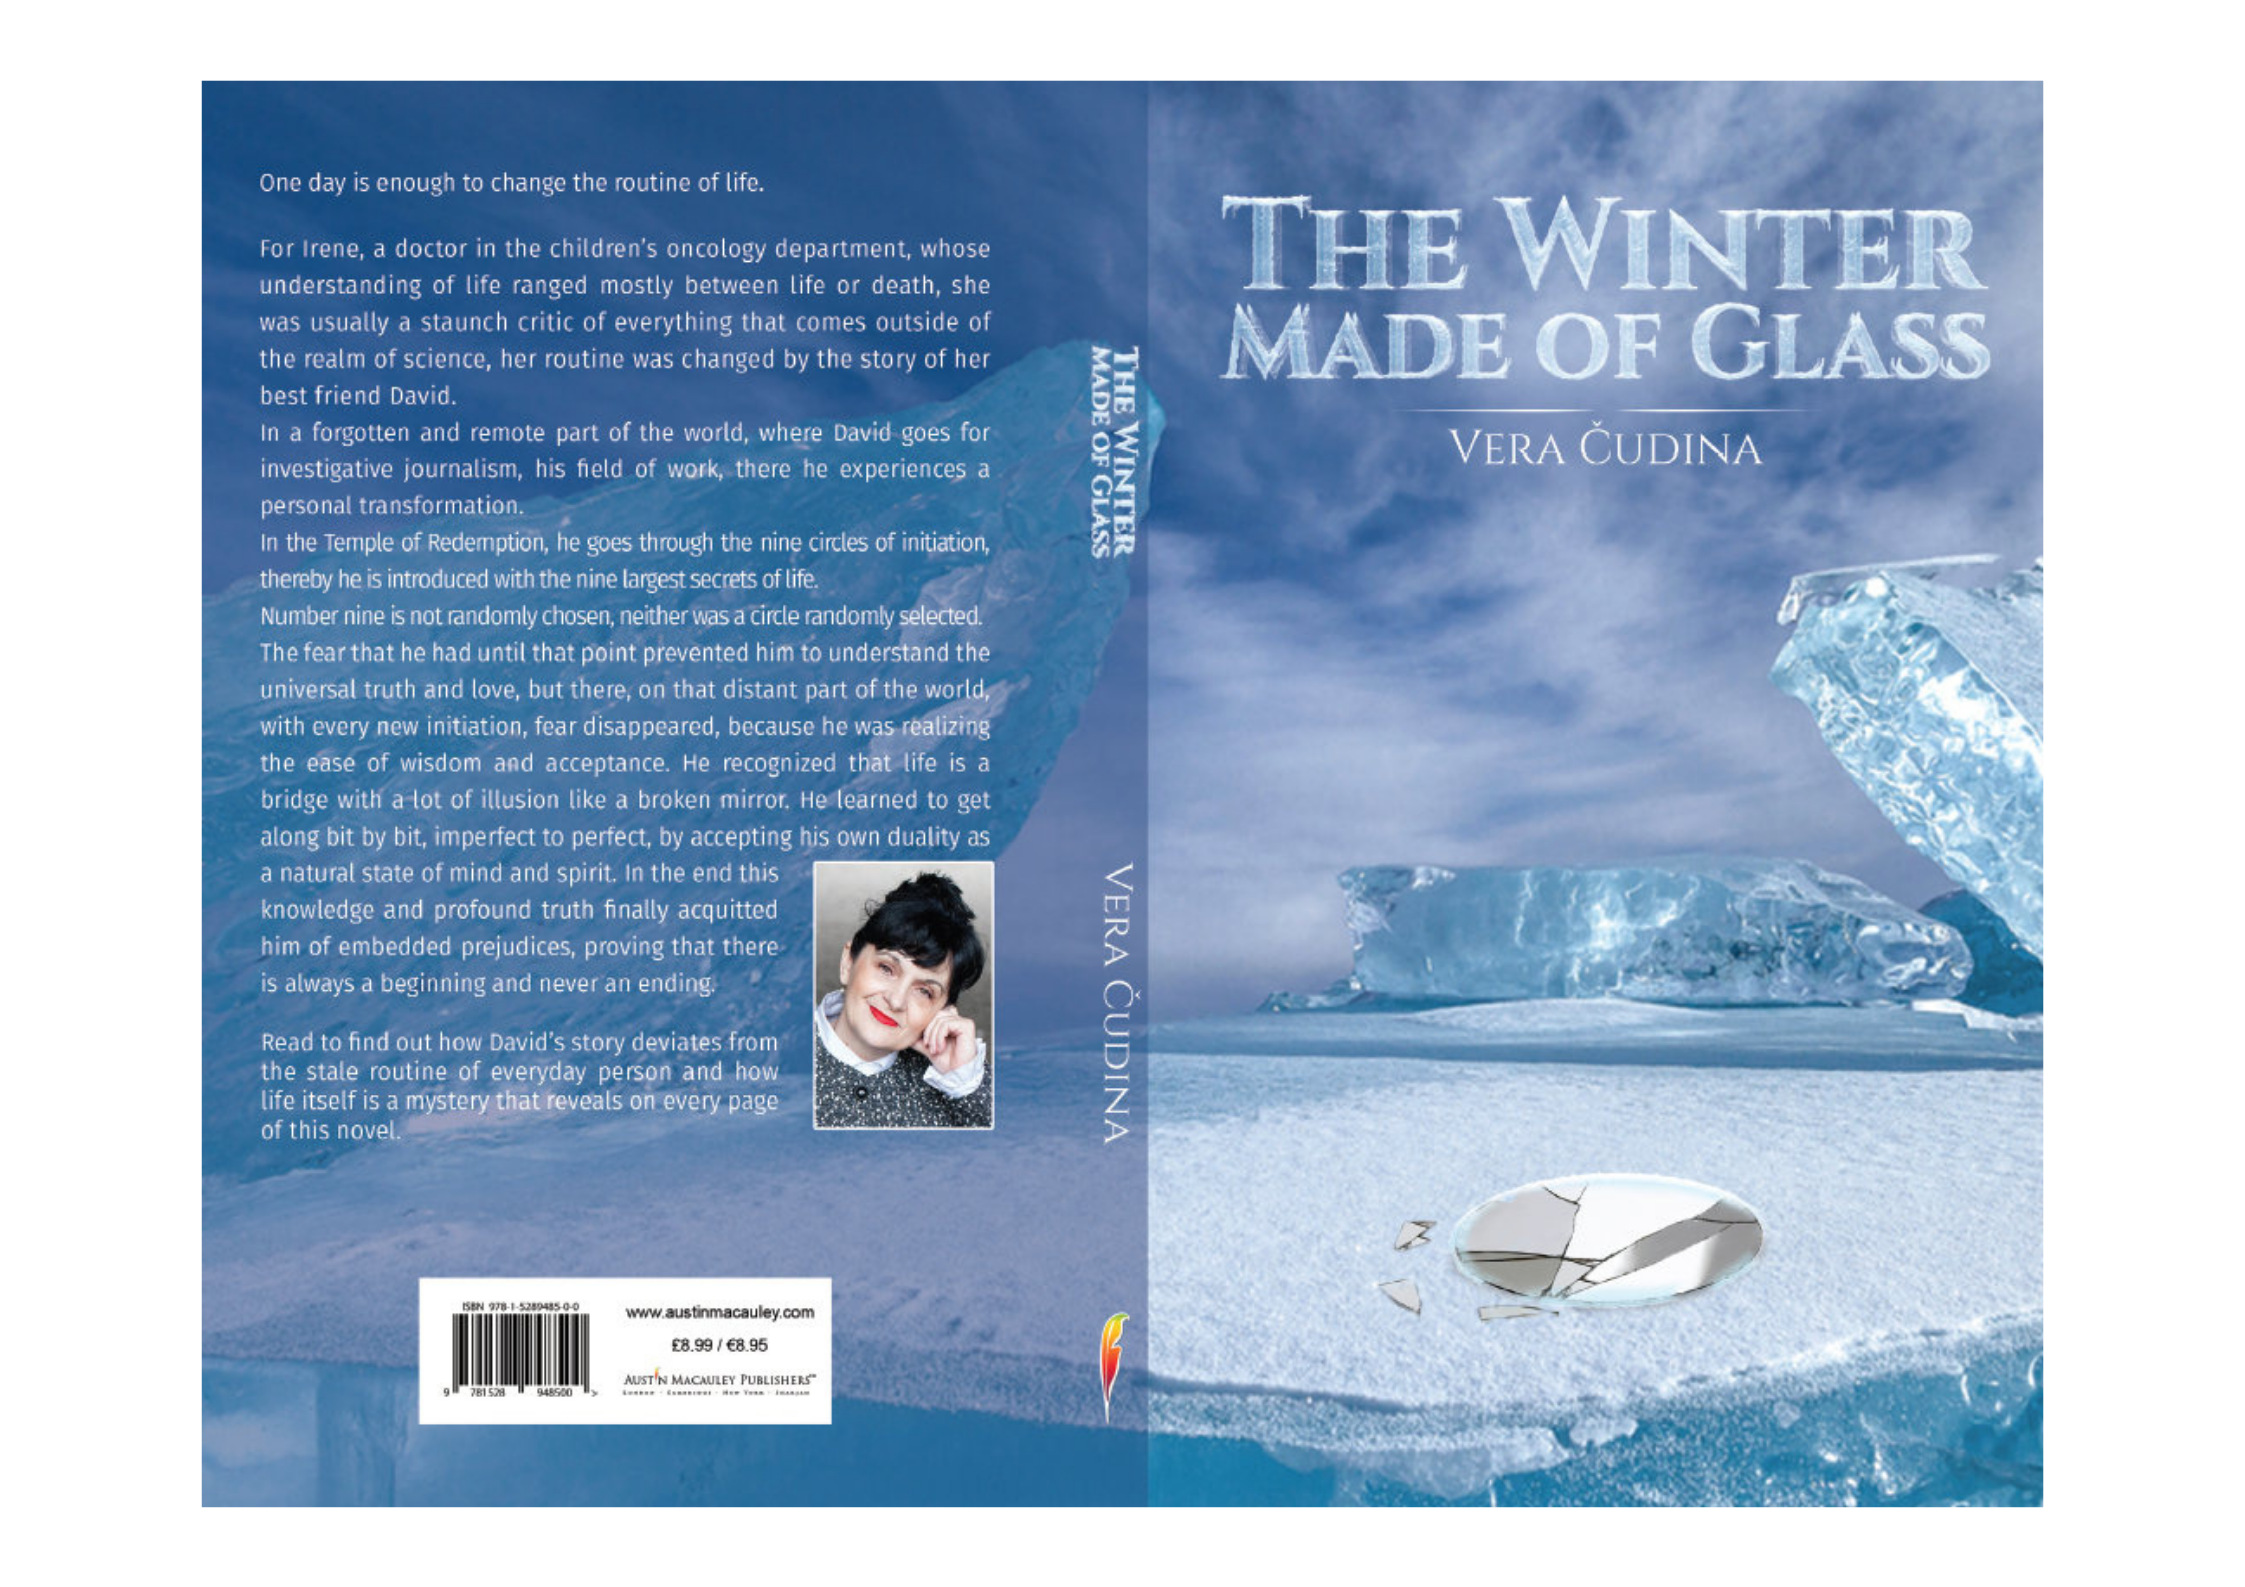 THE WINTER MADE OF GLASS